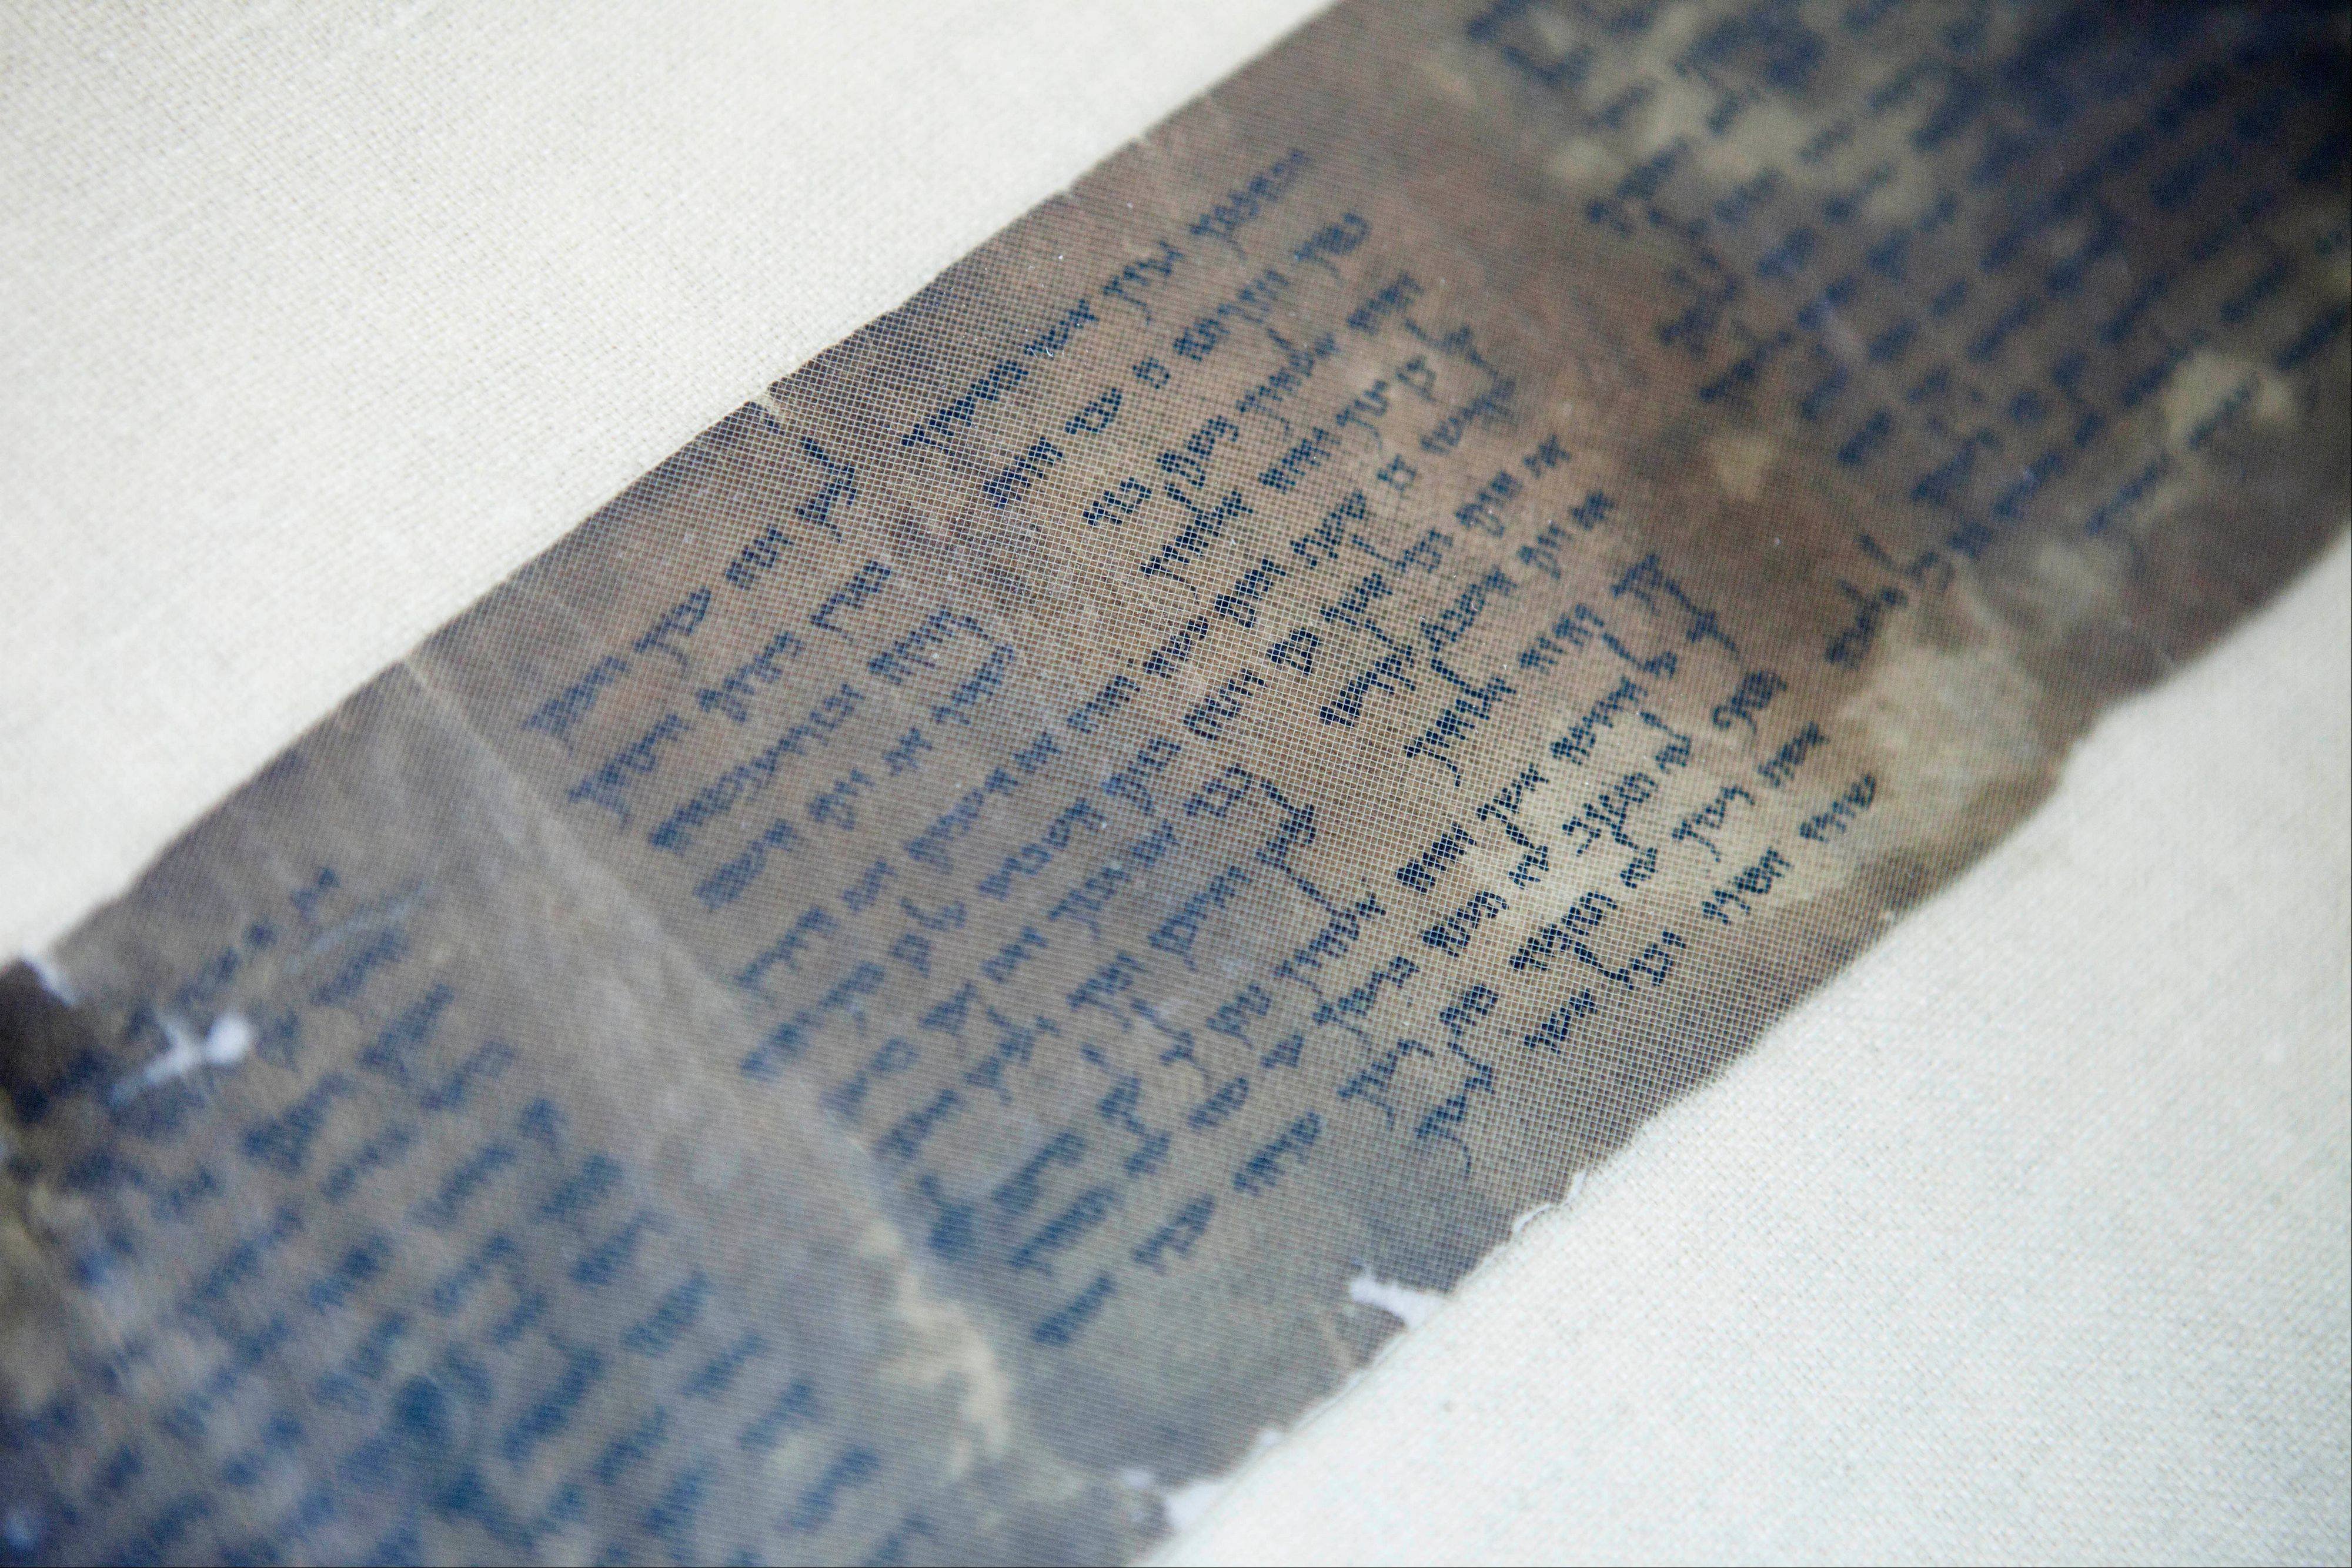 The ten commandments is written on one of the Dead Sea Scrolls in Jerusalem. Nearly 70 years after the discovery of the world's oldest biblical manuscripts, the Palestinian family who originally sold them to scholars and institutions is now quietly marketing the leftovers.